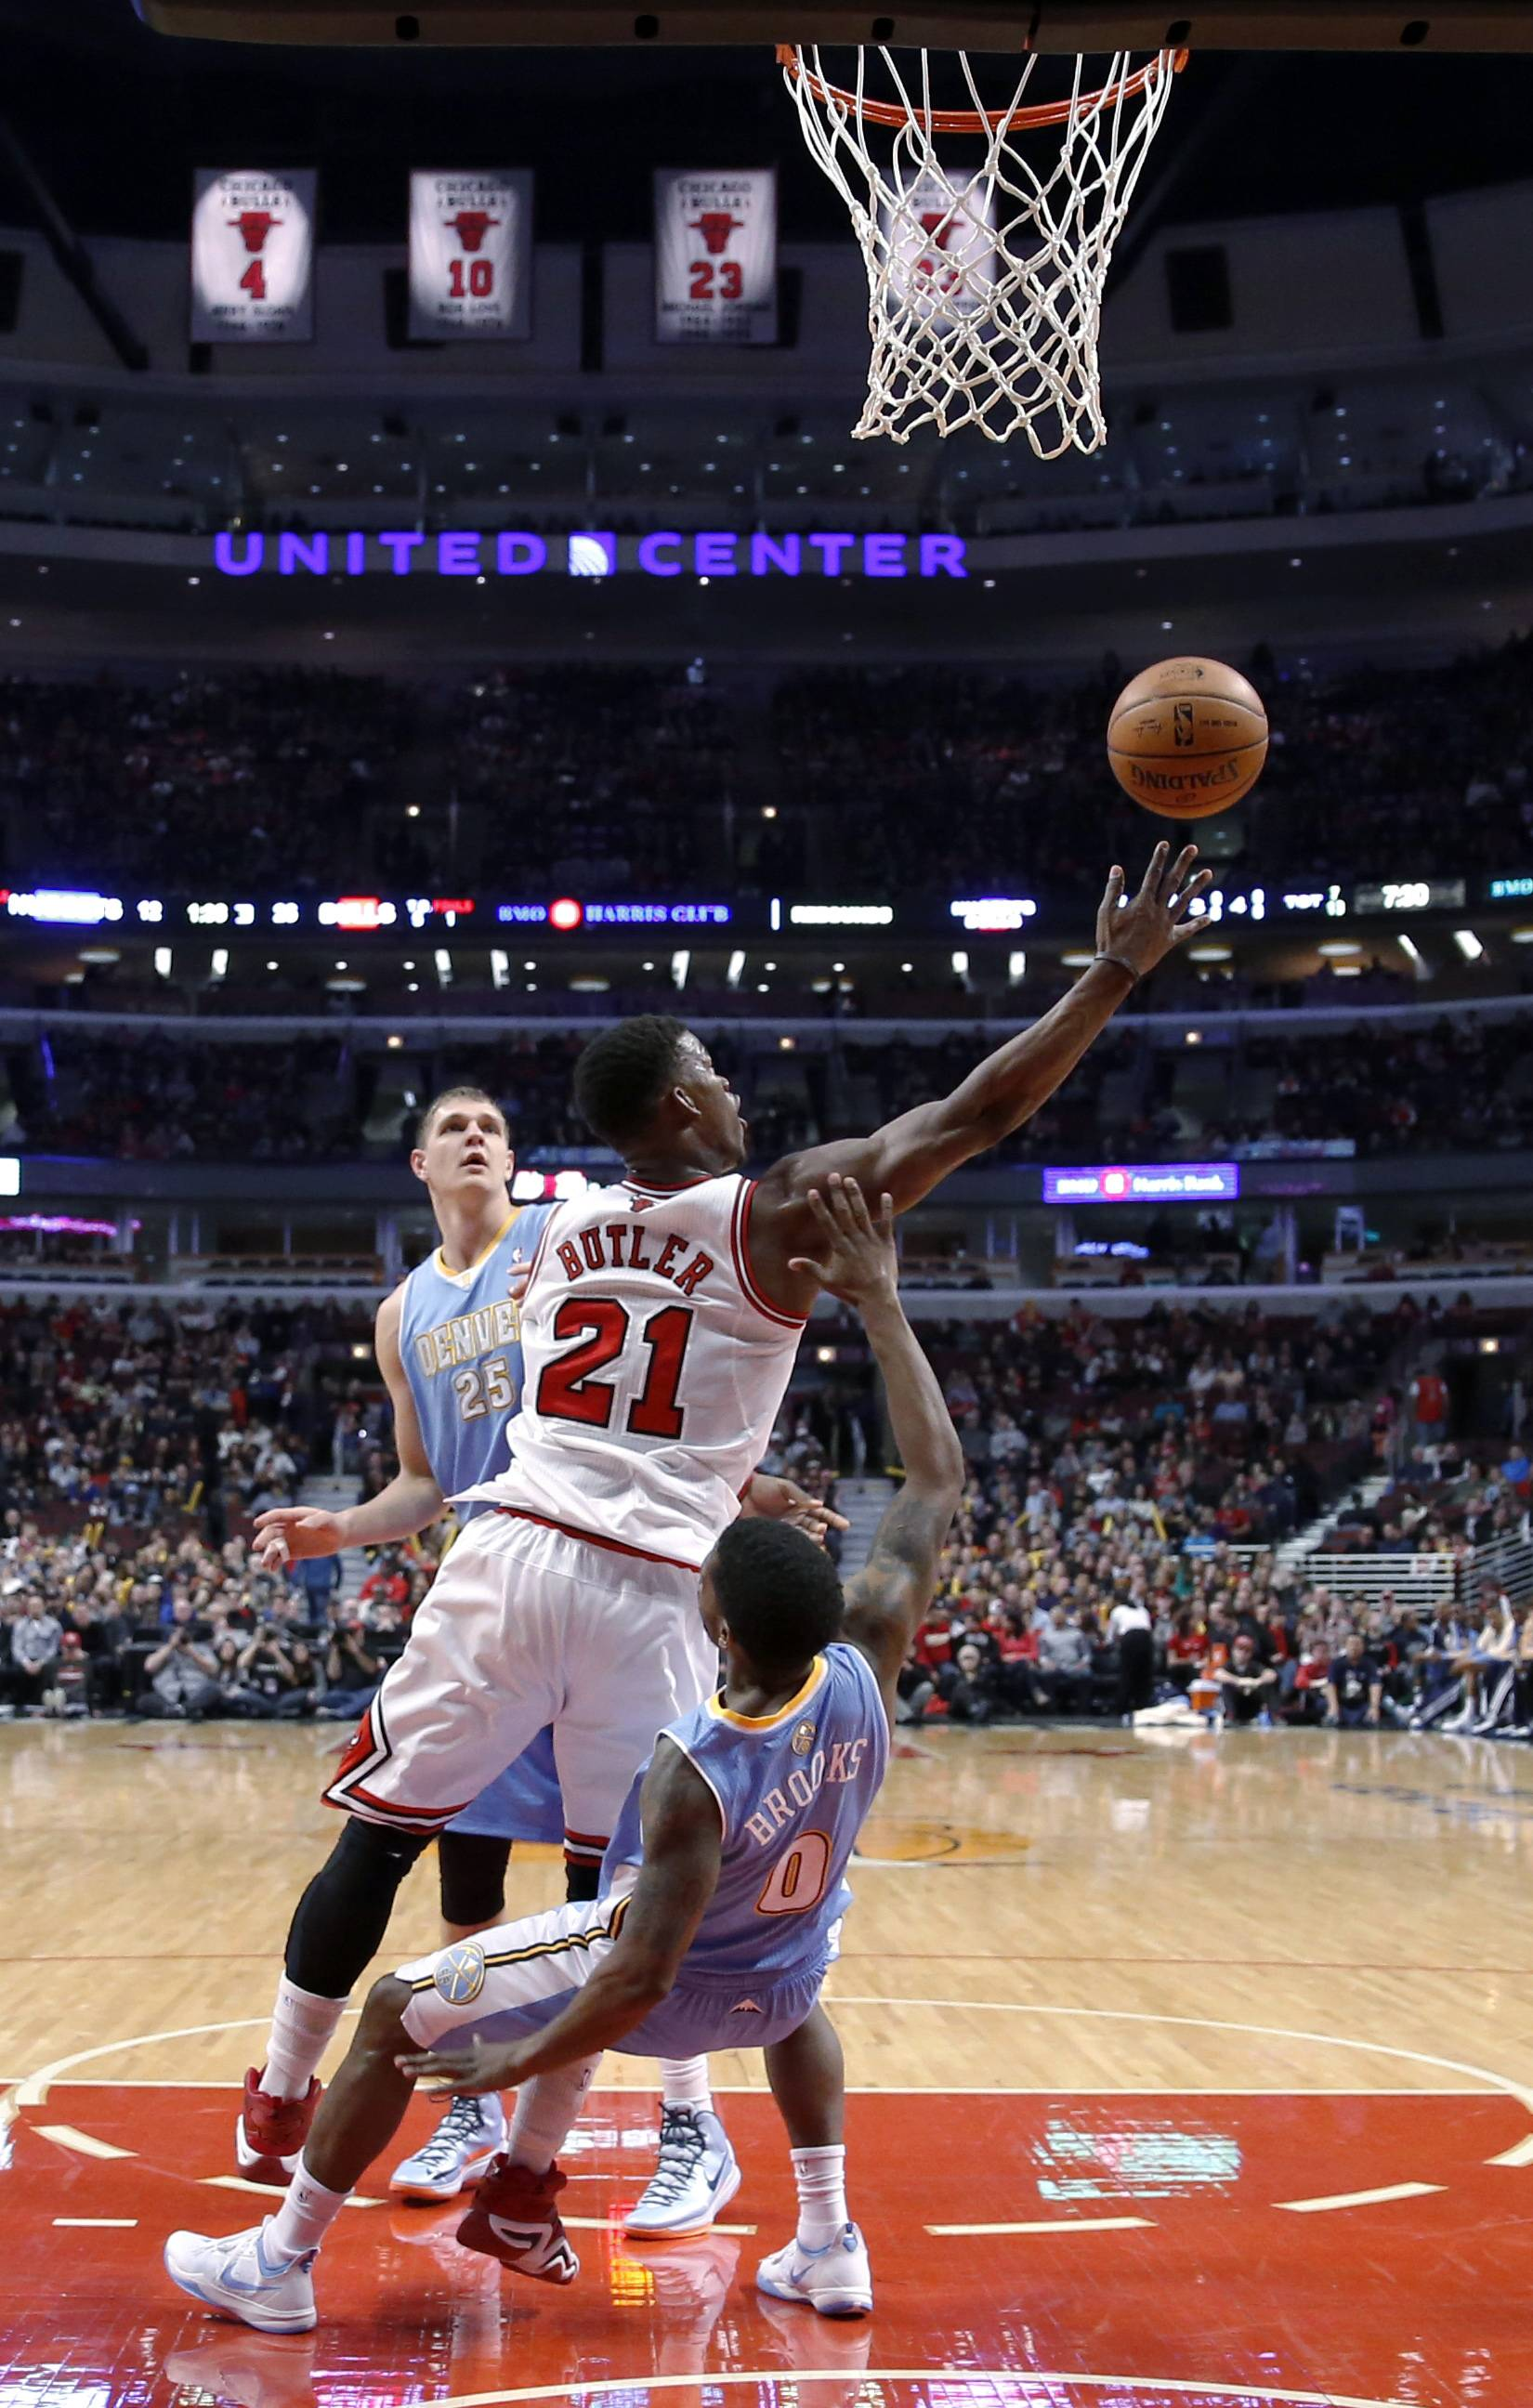 D.J. Augustin had 22 points and eight assists, and the Bulls routed the Denver Nuggets 117-89 Friday night for their fifth consecutive victory.Rookie Tony Snell added a career-high 20 points as the Bulls put seven players in double figures. Taj Gibson had 15 points and 10 rebounds, and Joakim Noah finished with 14 points, 11 boards and five assists.